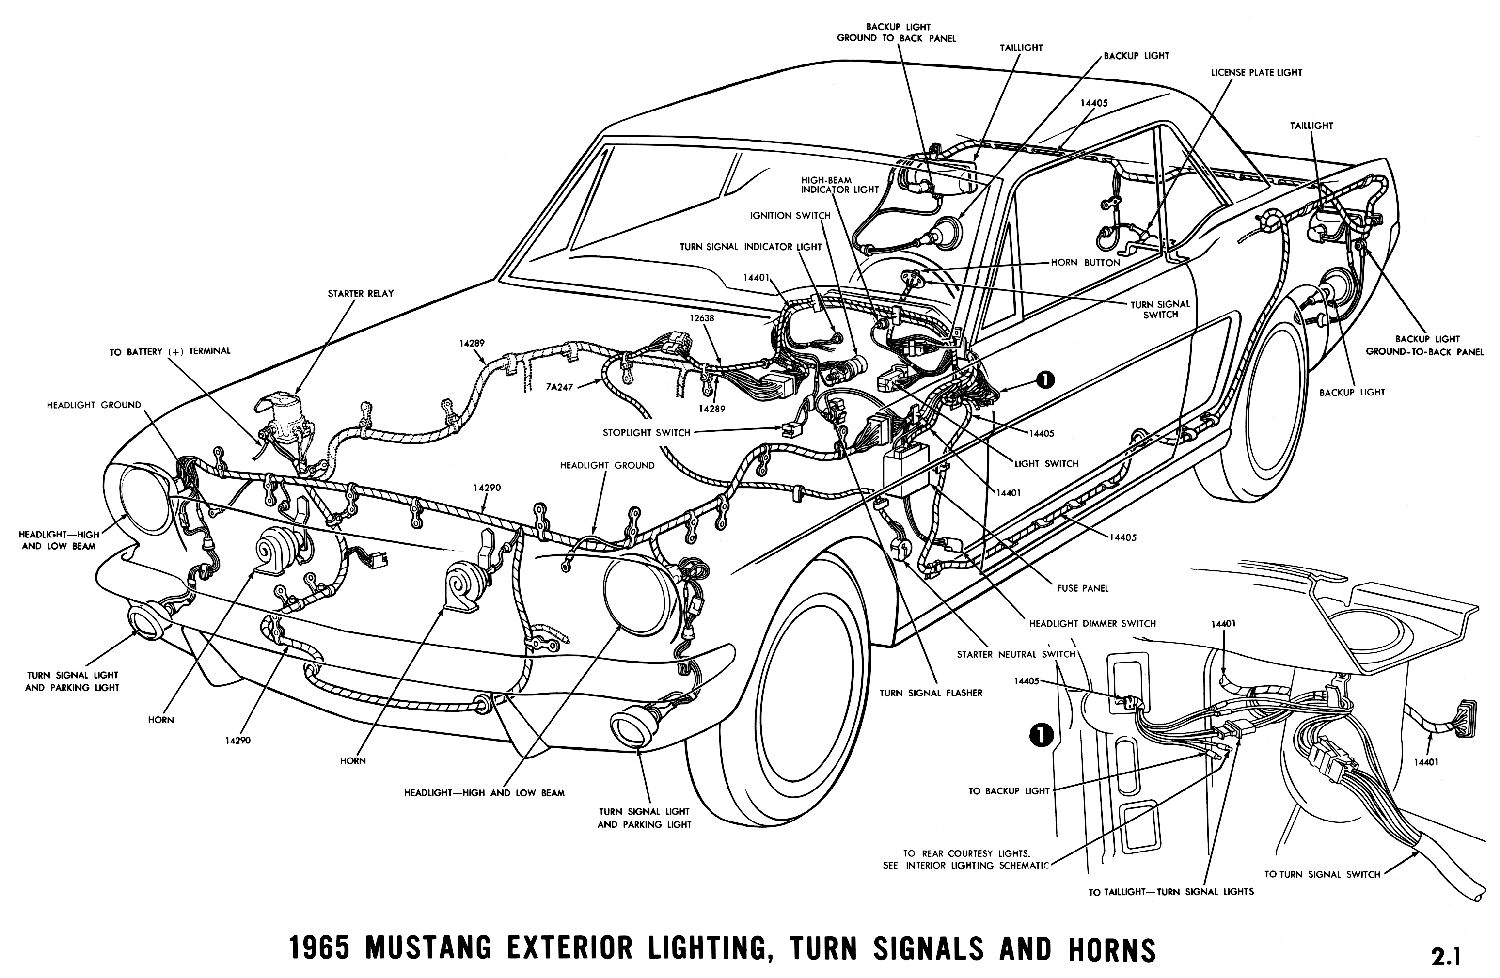 1965d 1965 mustang wiring diagrams average joe restoration 1965 mustang turn signal wiring diagram at bakdesigns.co